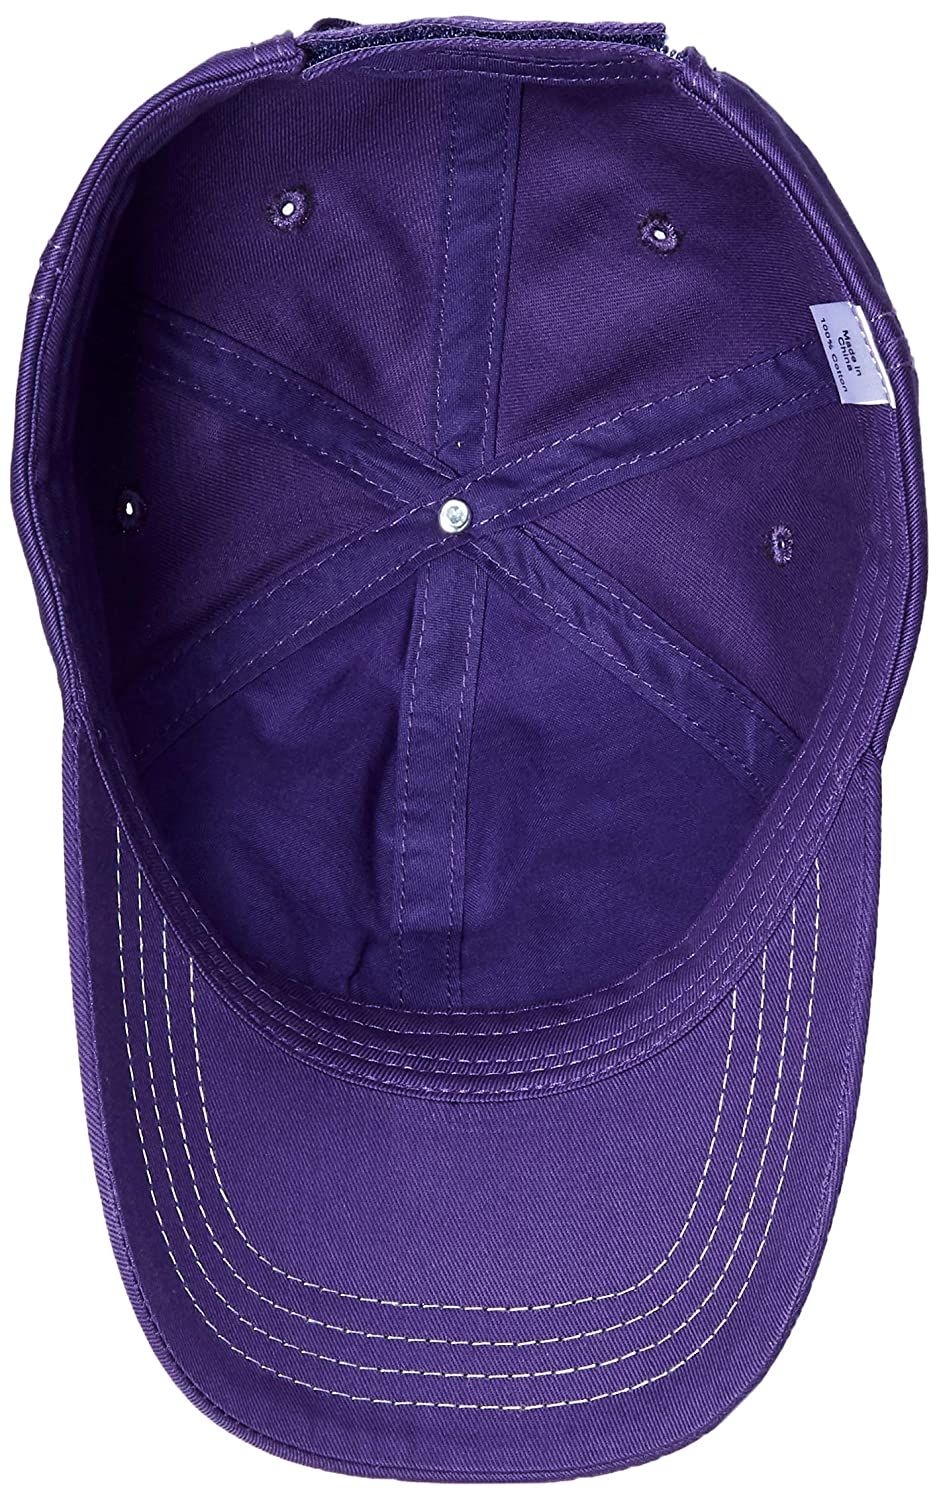 f70353b6c07b5 Amazon.com  Ford Genuine Mustang Women s Ladies Sequin Pony Purple Baseball  Cap Hat  Sports   Outdoors